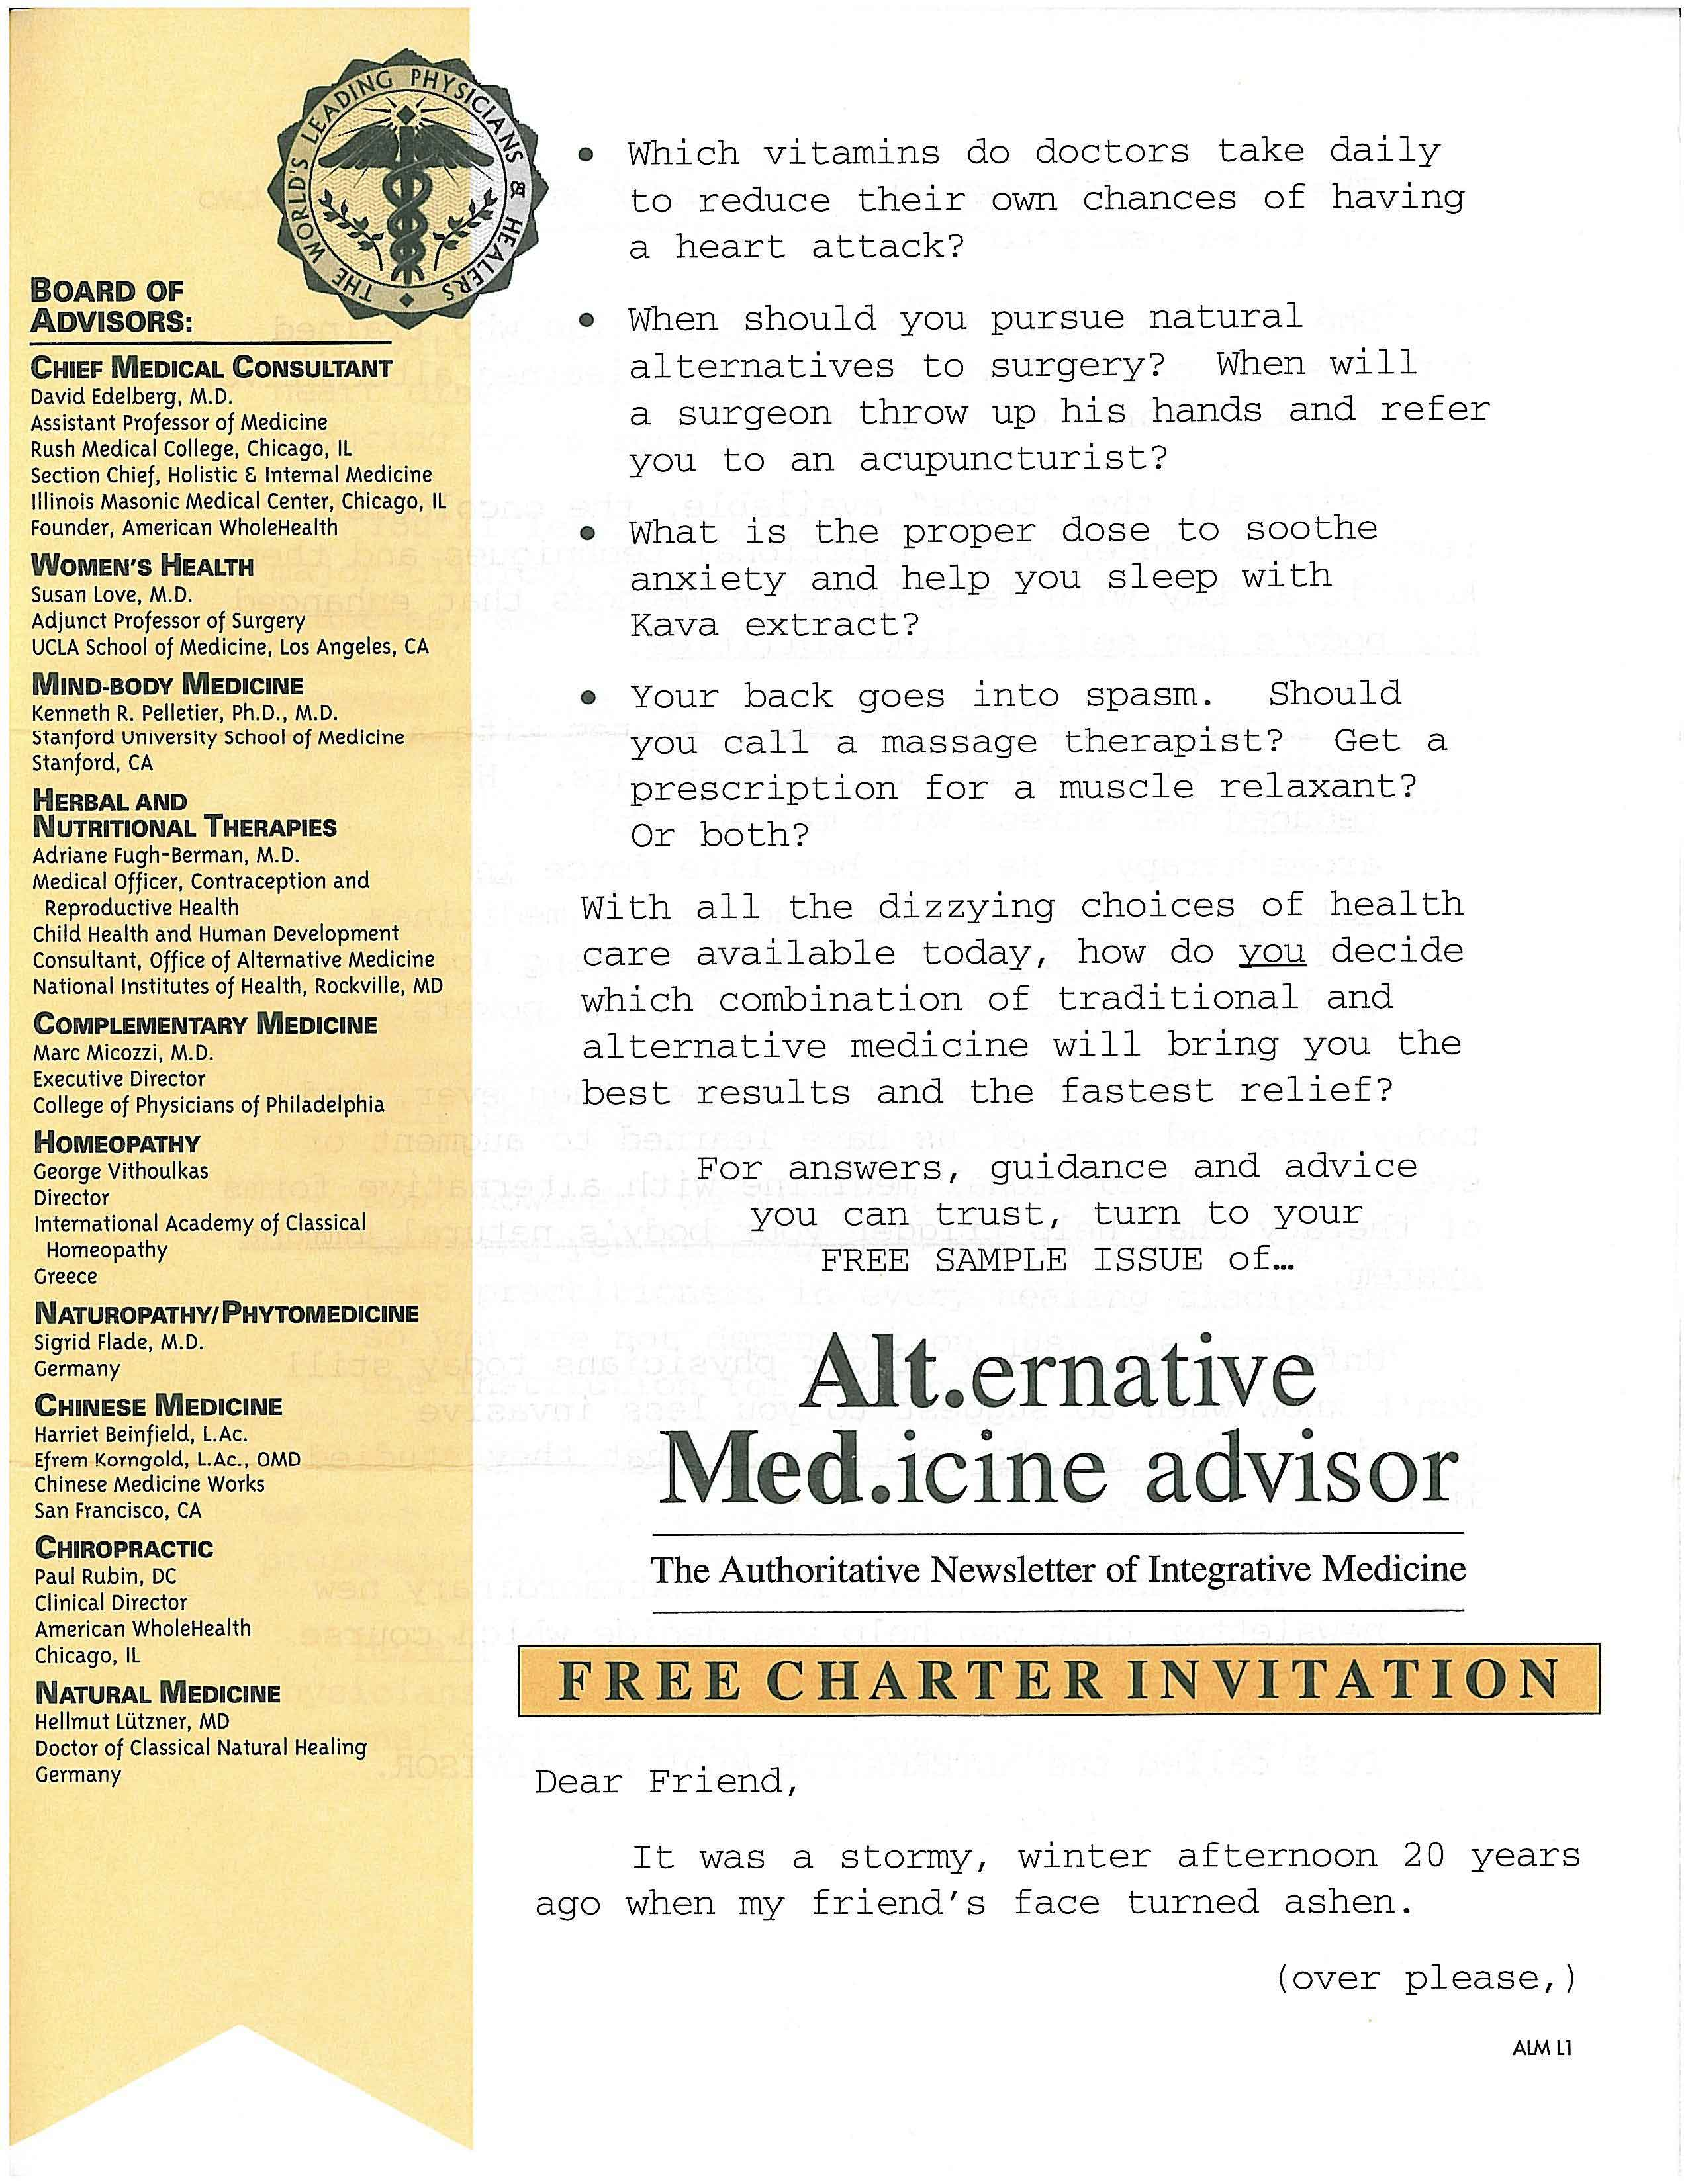 image of Alternative MD Advisor direct mail sales letter page 1